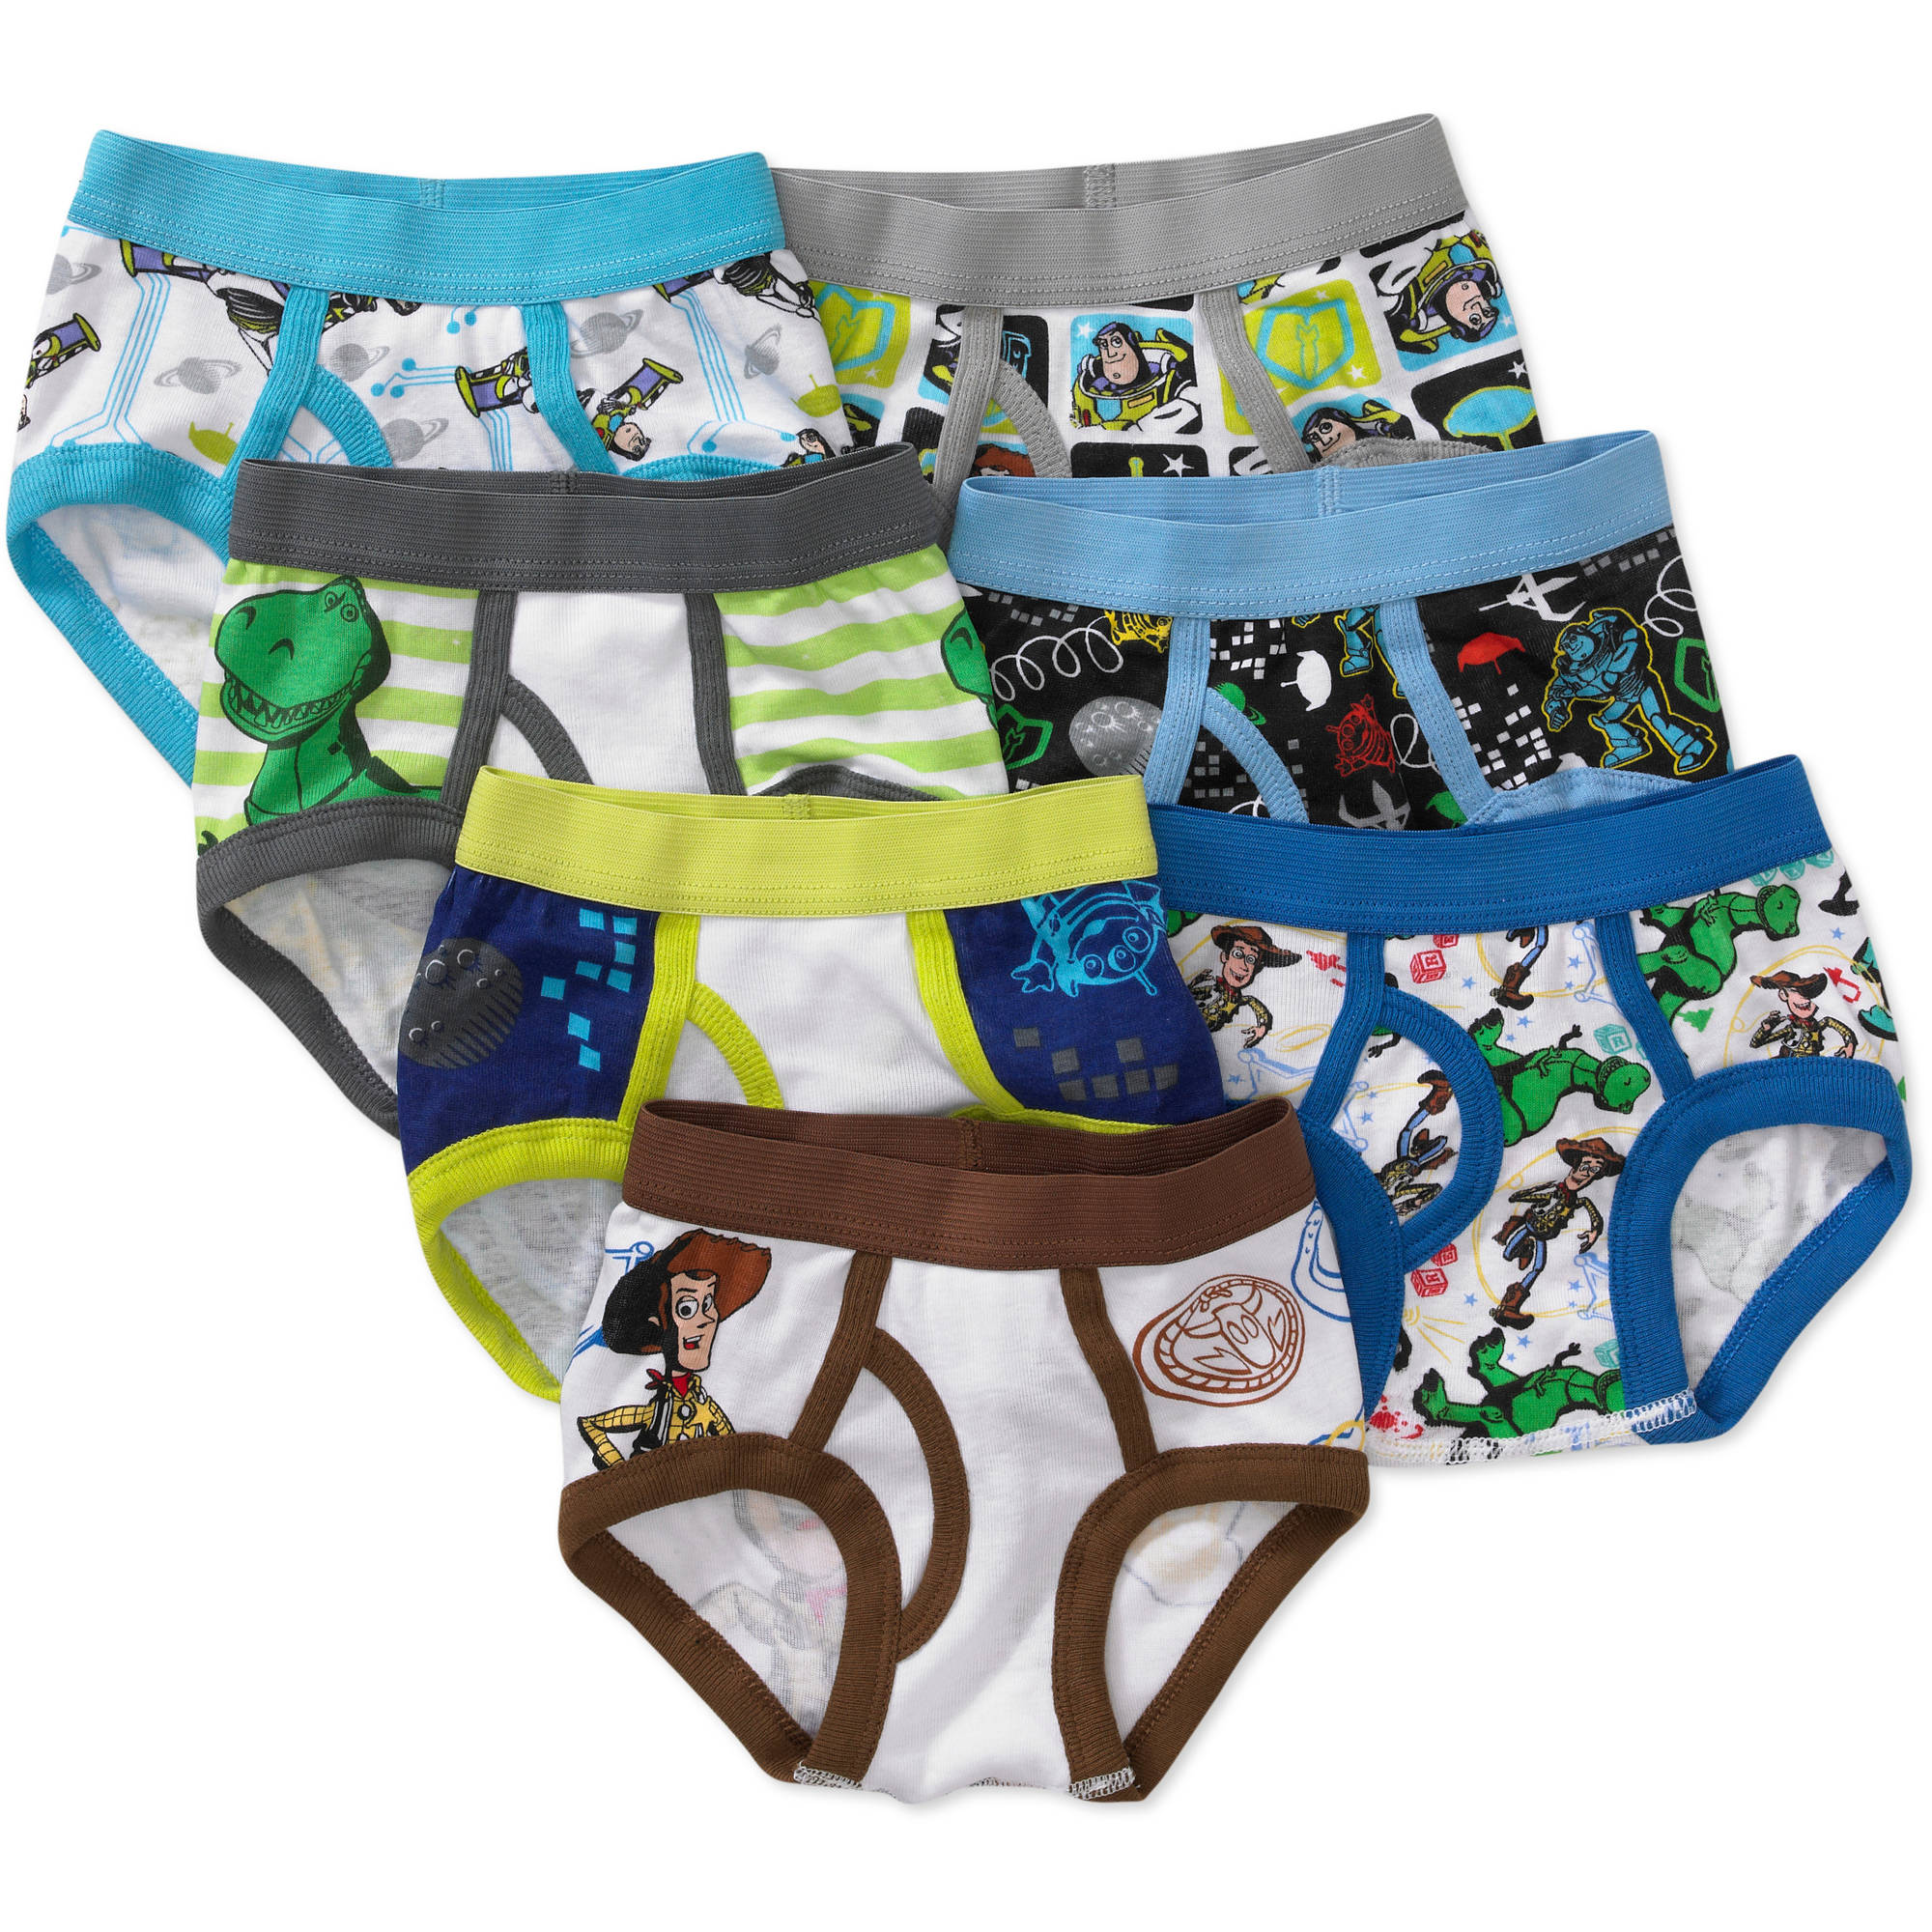 Disney Toddler Boys' Toy Story Favorite Characters Underwear, 7-Pack